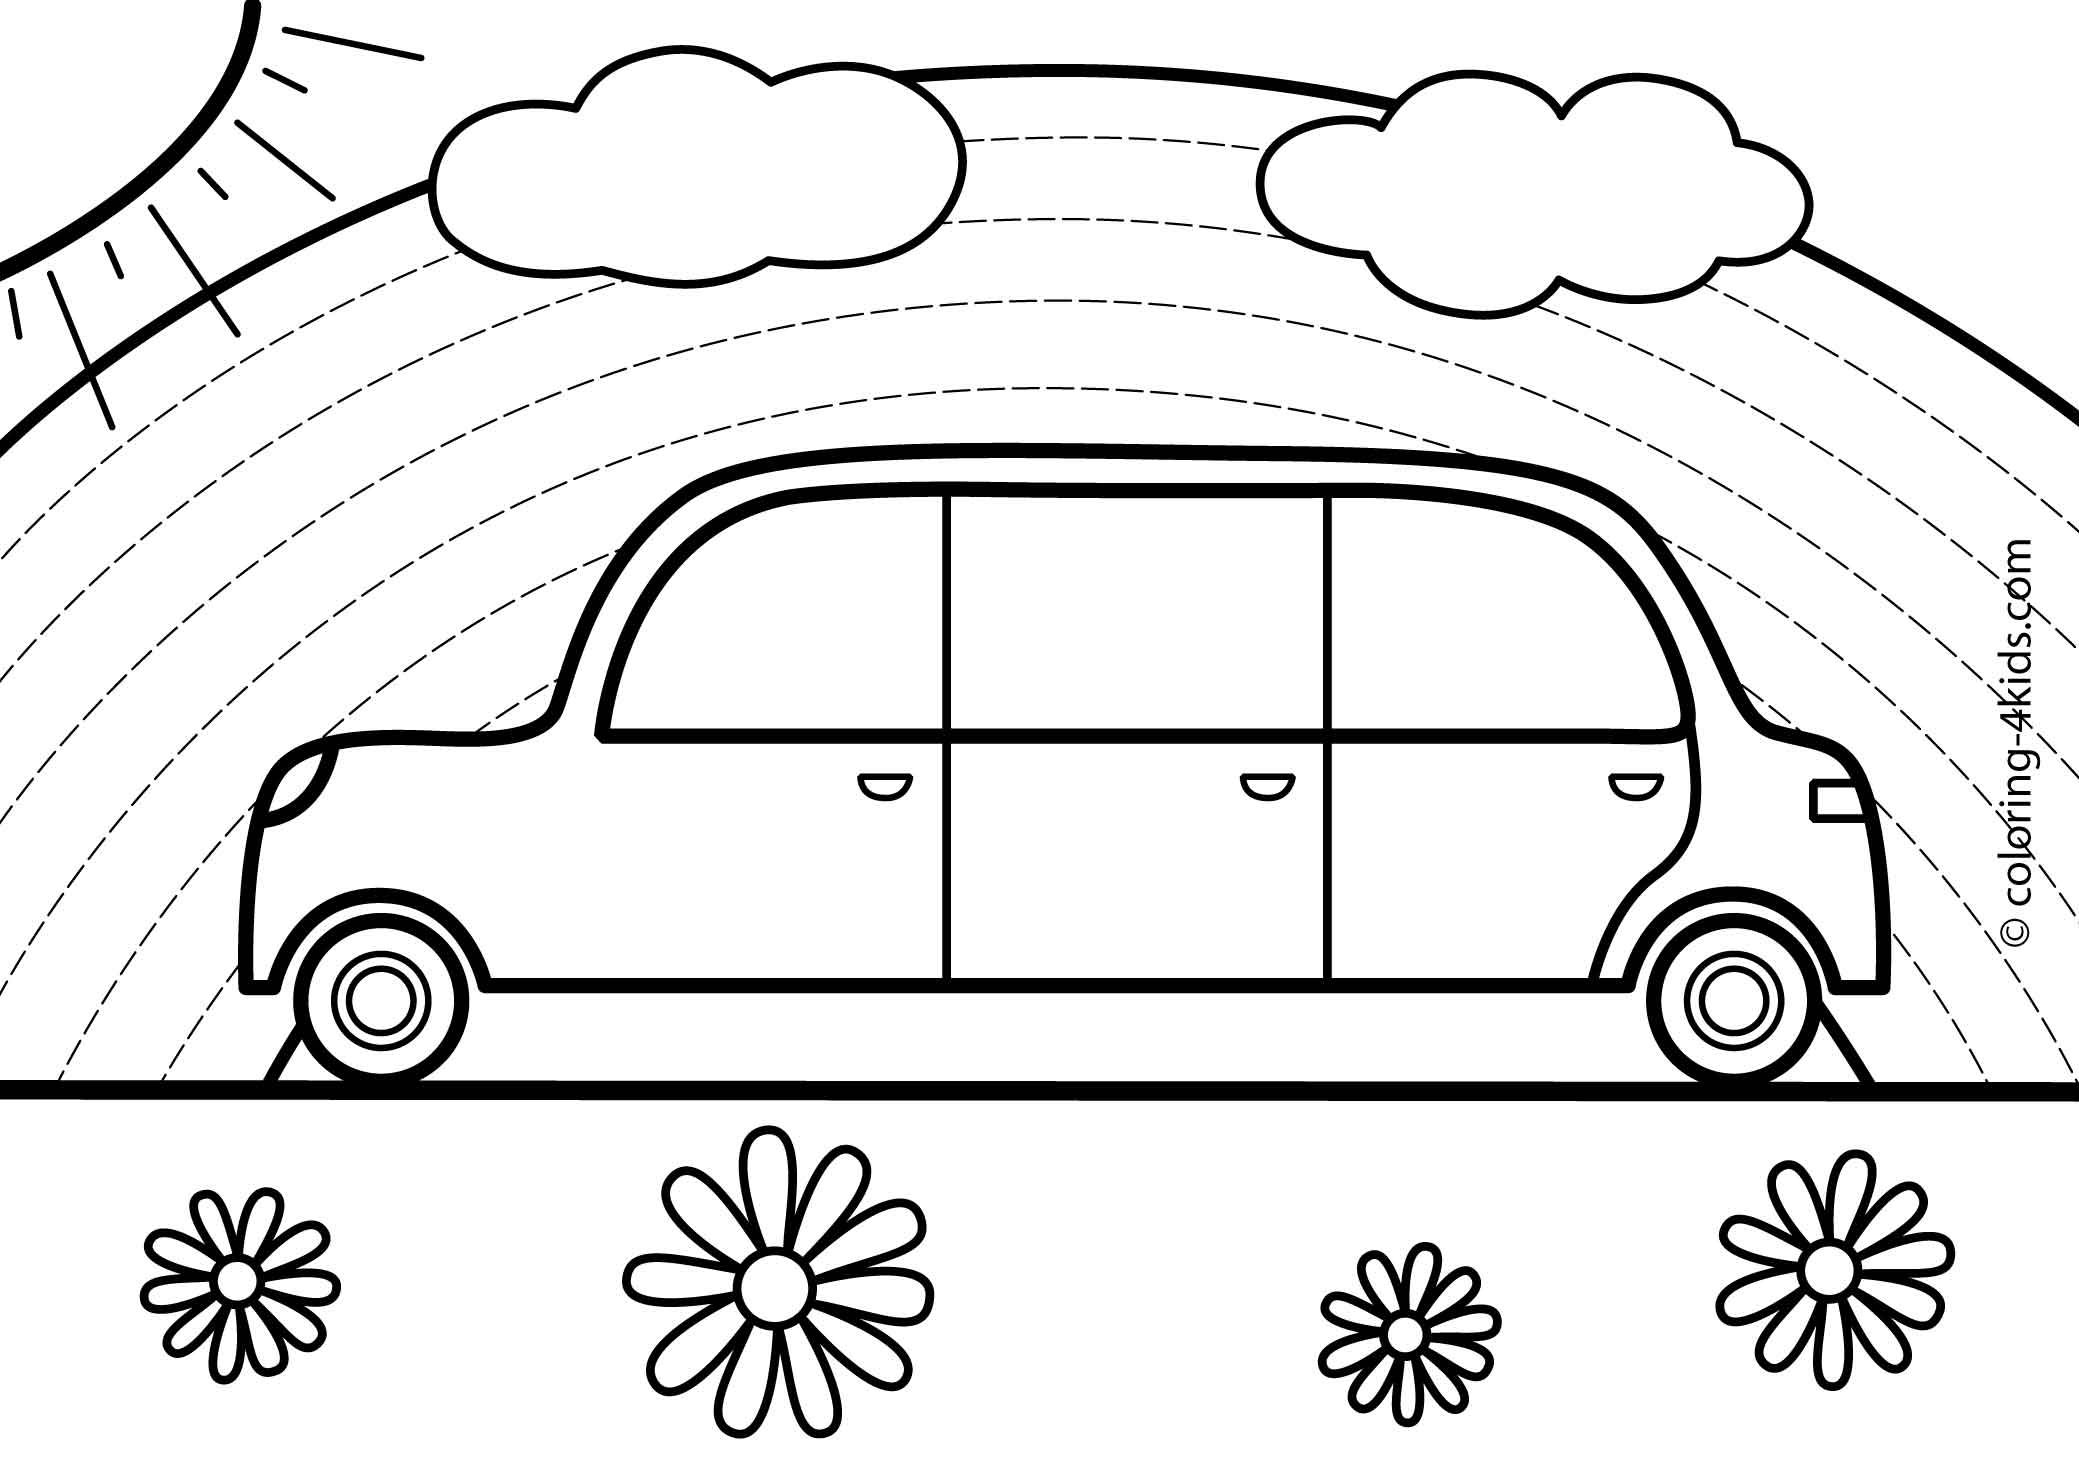 Transportation Coloring Pages Car : Best cars images on pinterest car coloring page for